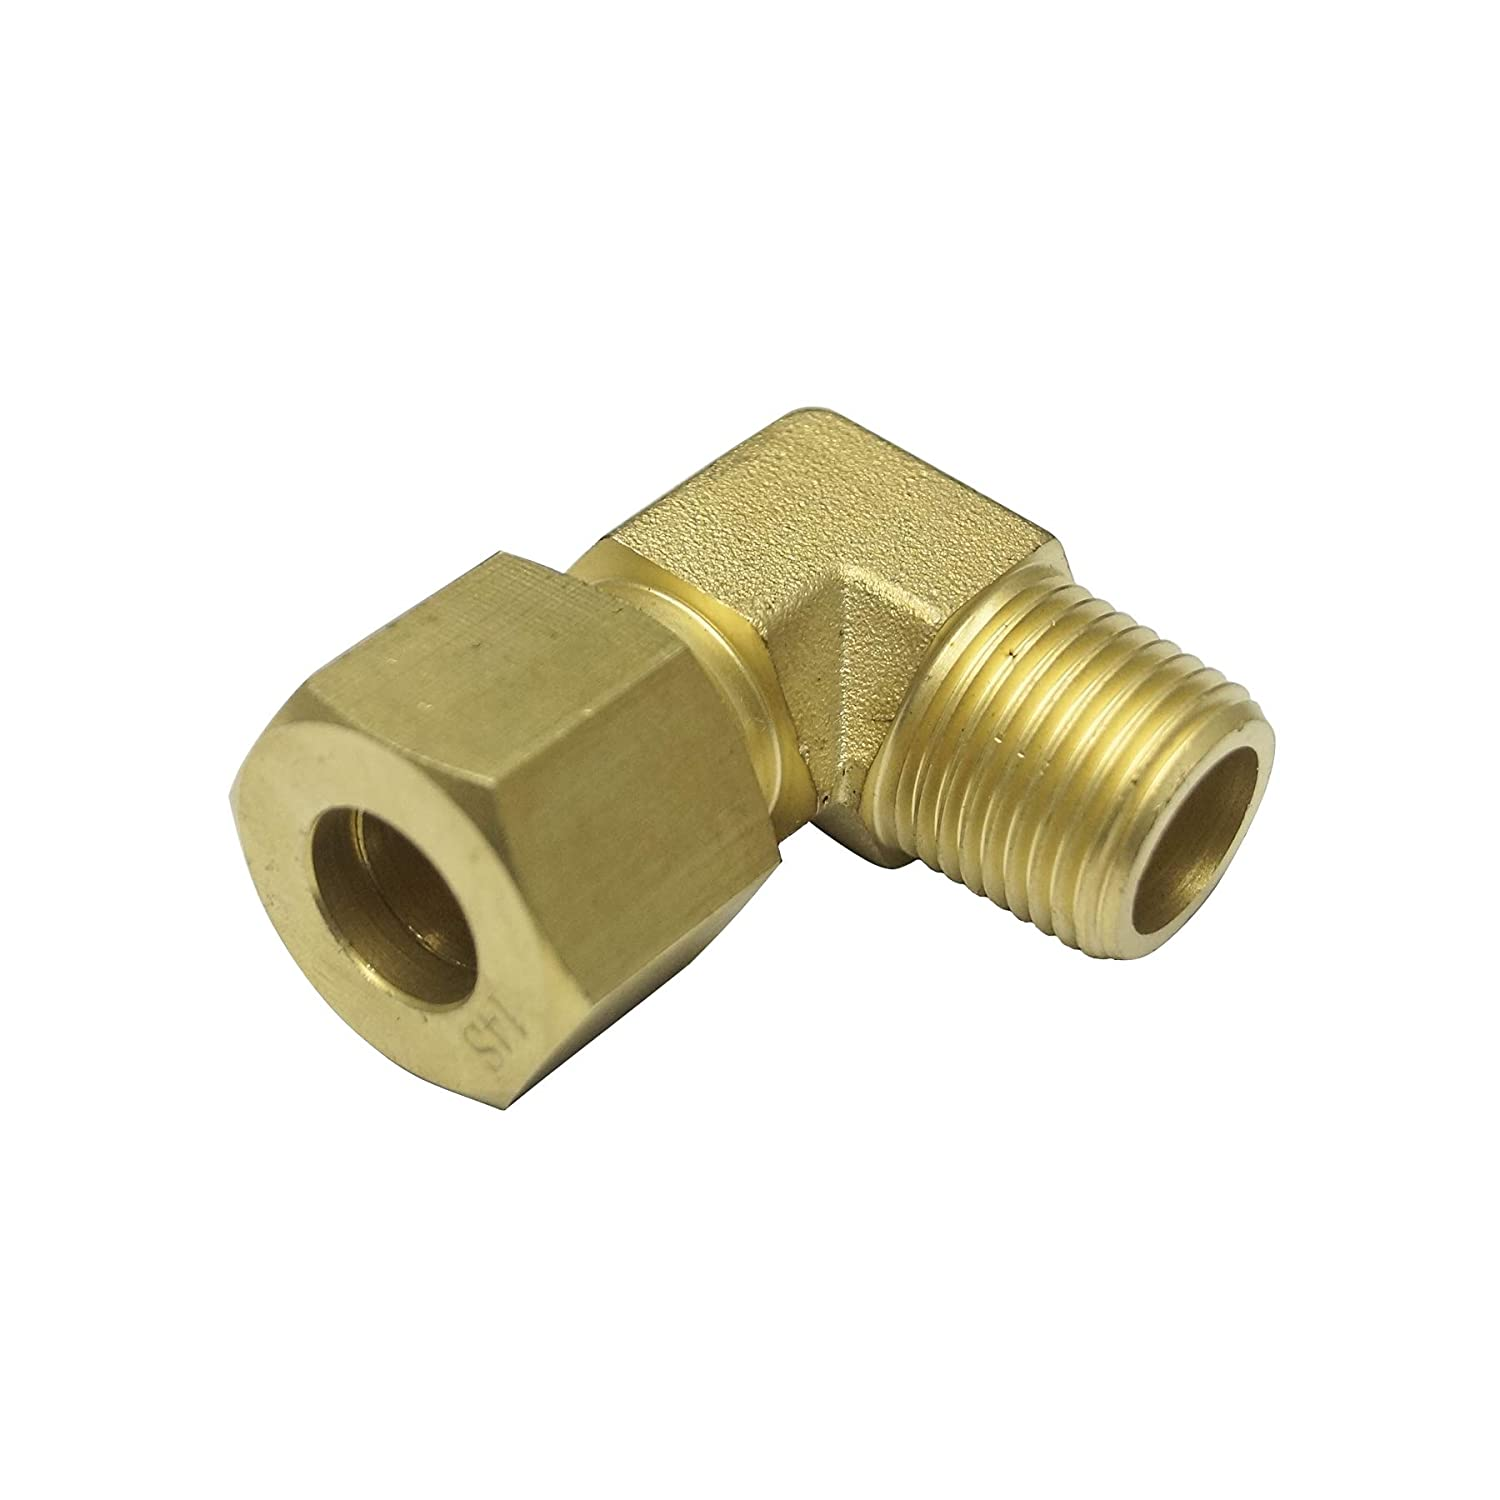 for 8MM OD Tube Brass Material 90 Degree Male Elbow 8L x 1//8 NPT Male Thread Light Series